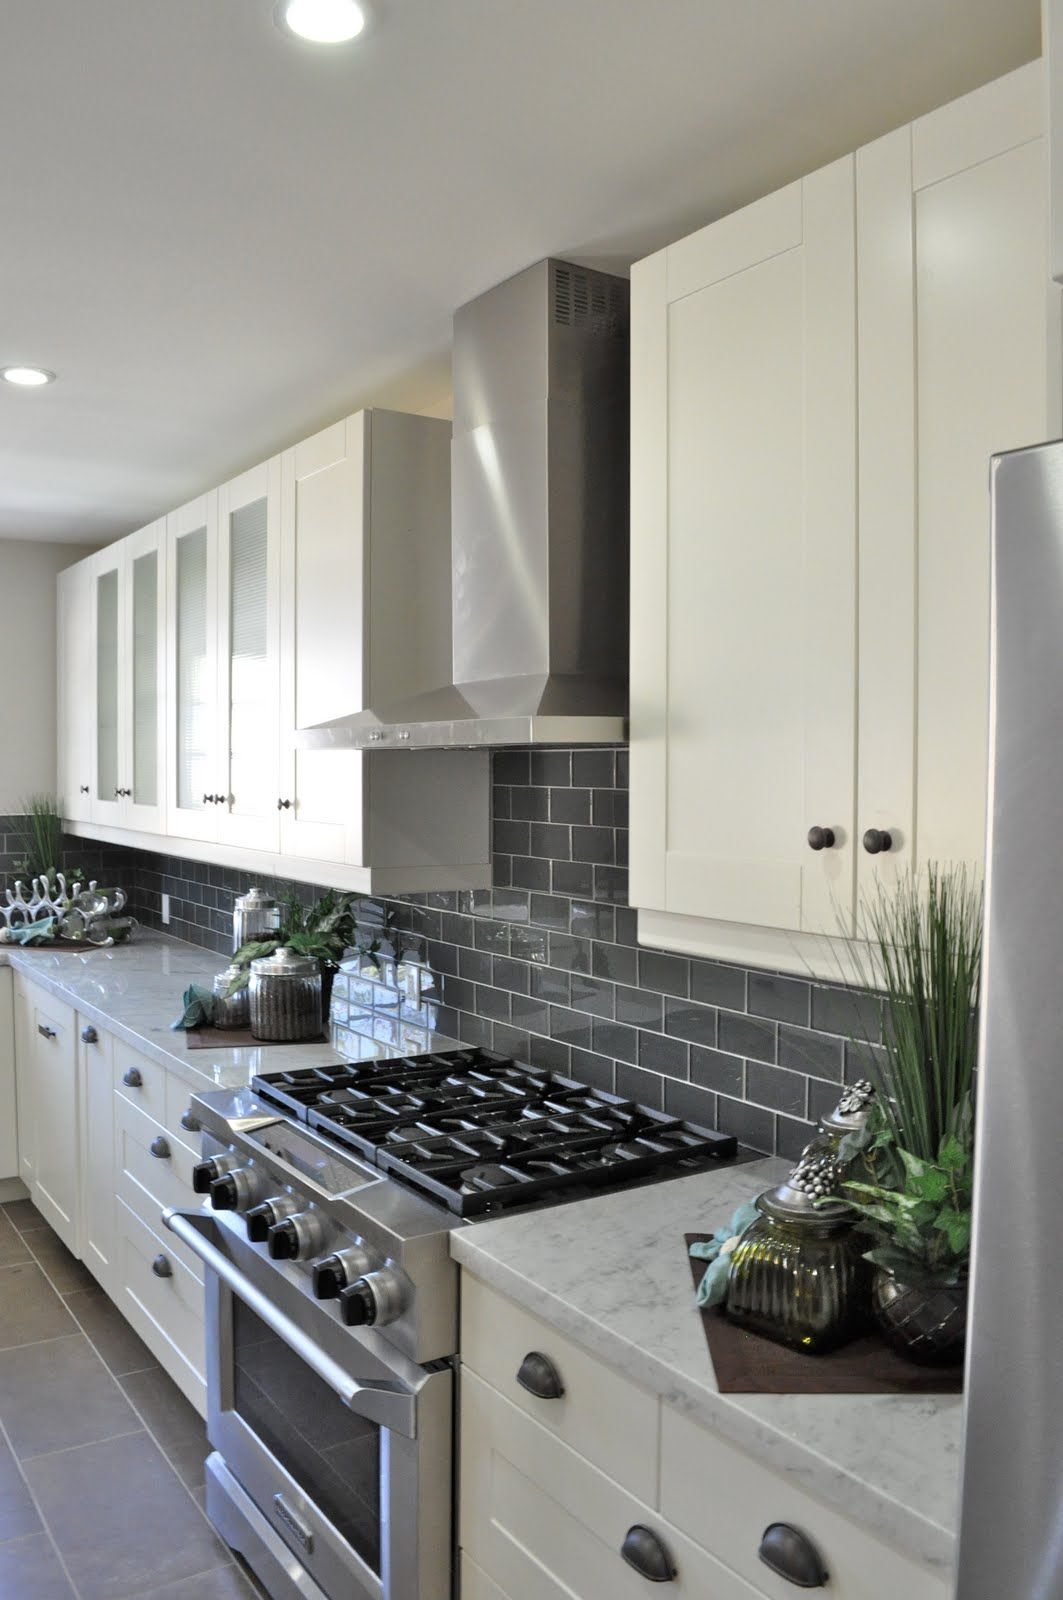 Olive Interior Design | House | Pinterest | Interiors, Kitchens and on